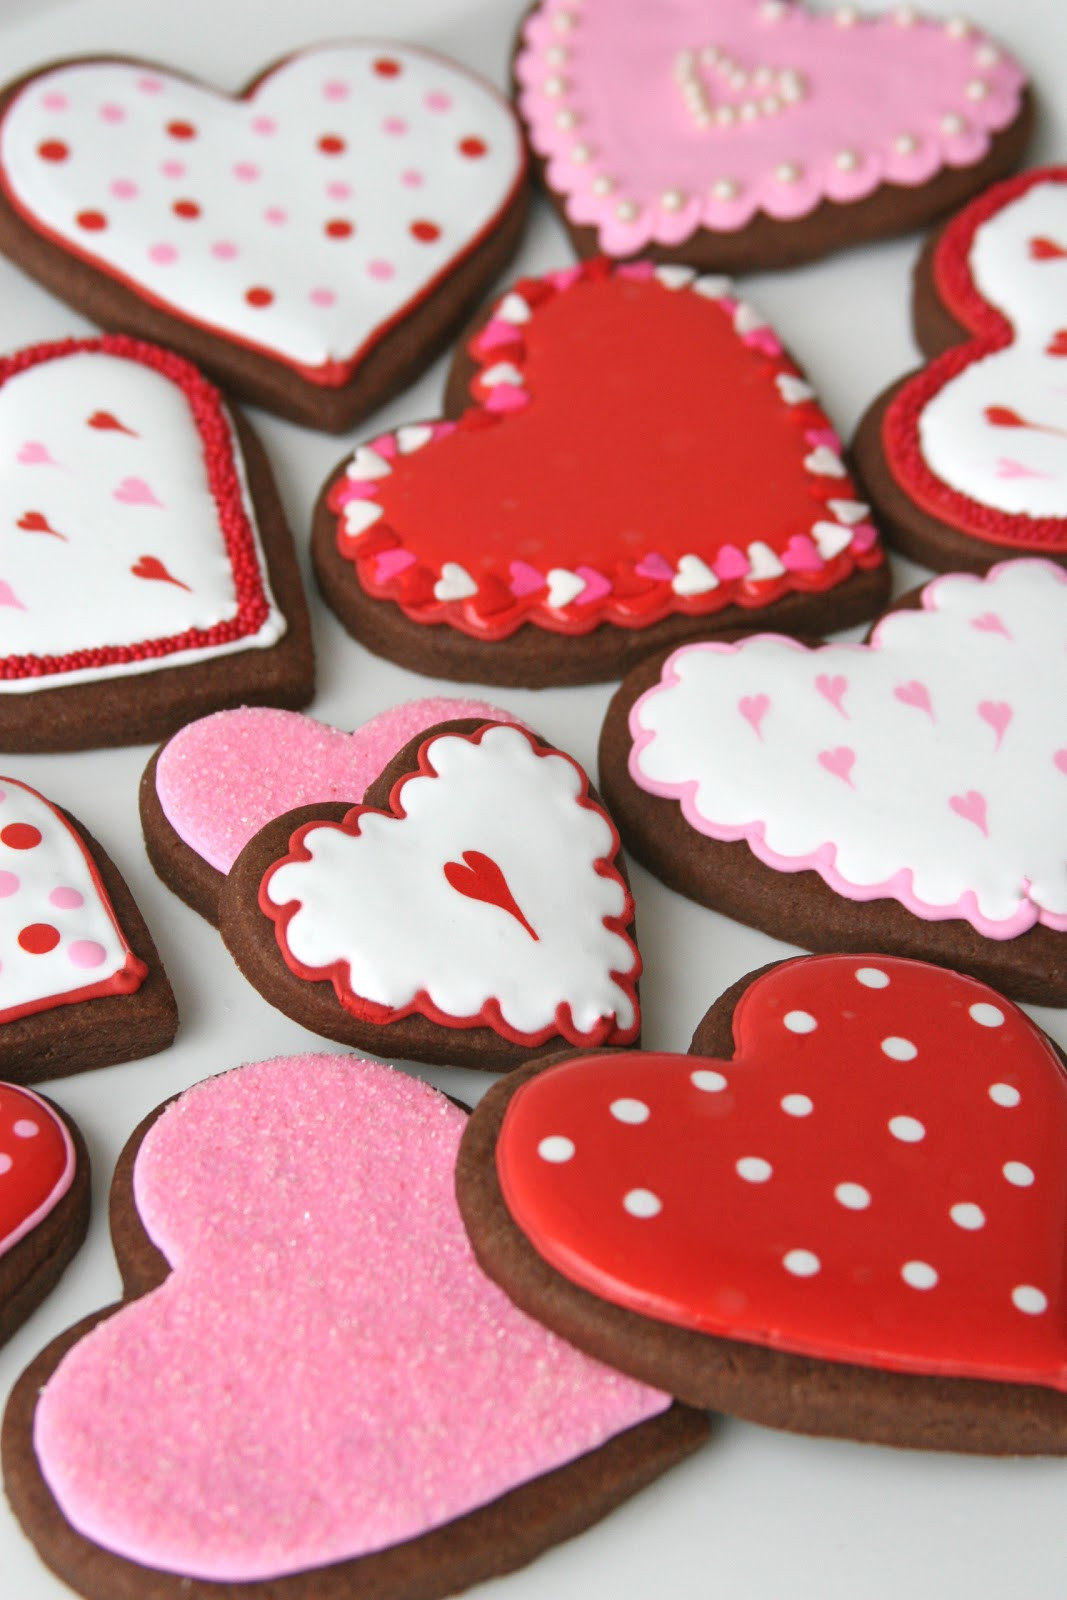 Valentine Day Cookies Recipe  Chocolate Rolled Cookies Recipe – Glorious Treats